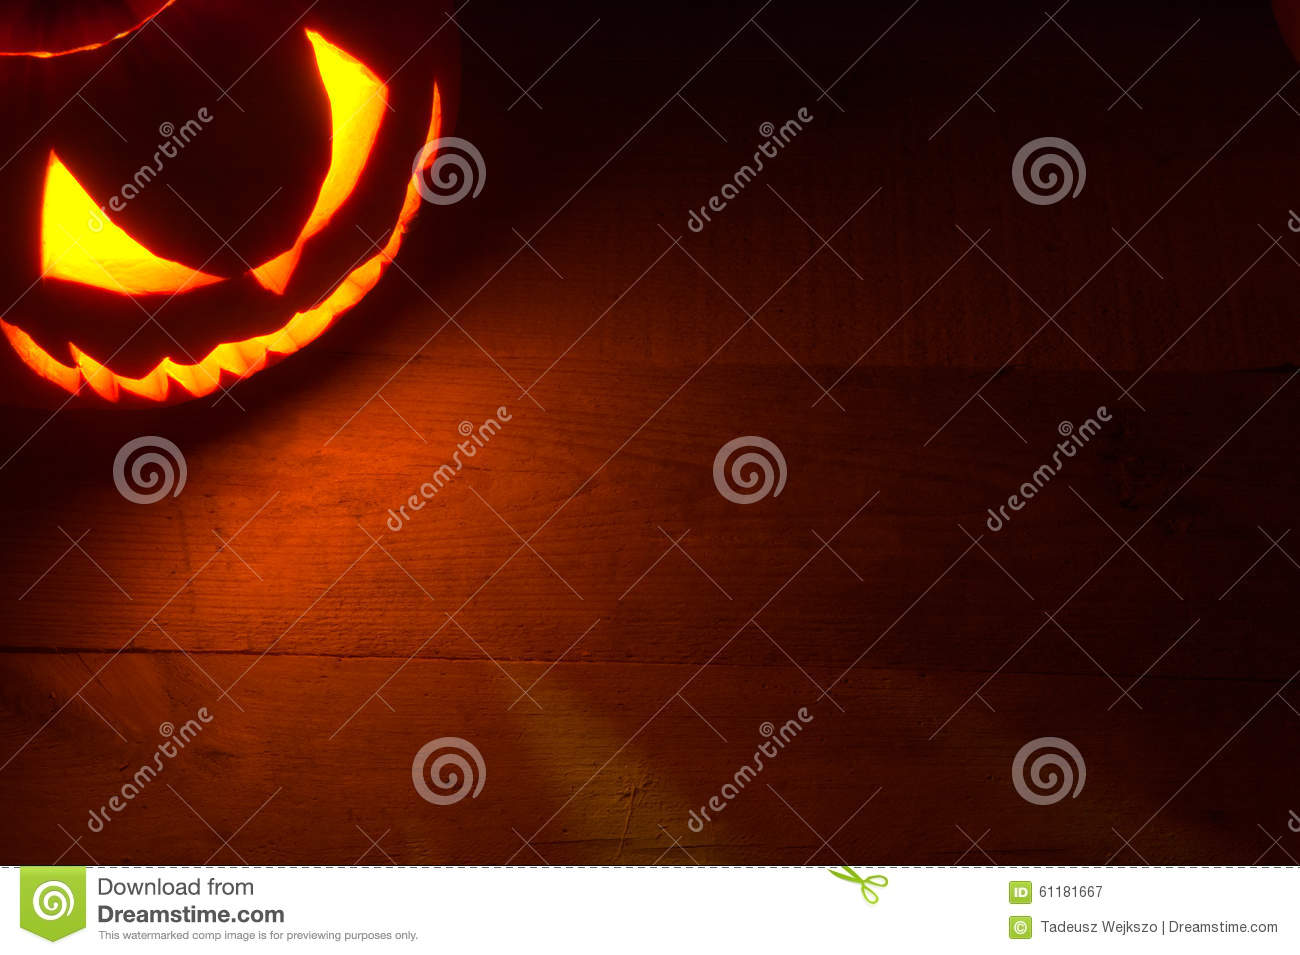 Spooky halloween background with evil face of jack o lantern in the corner